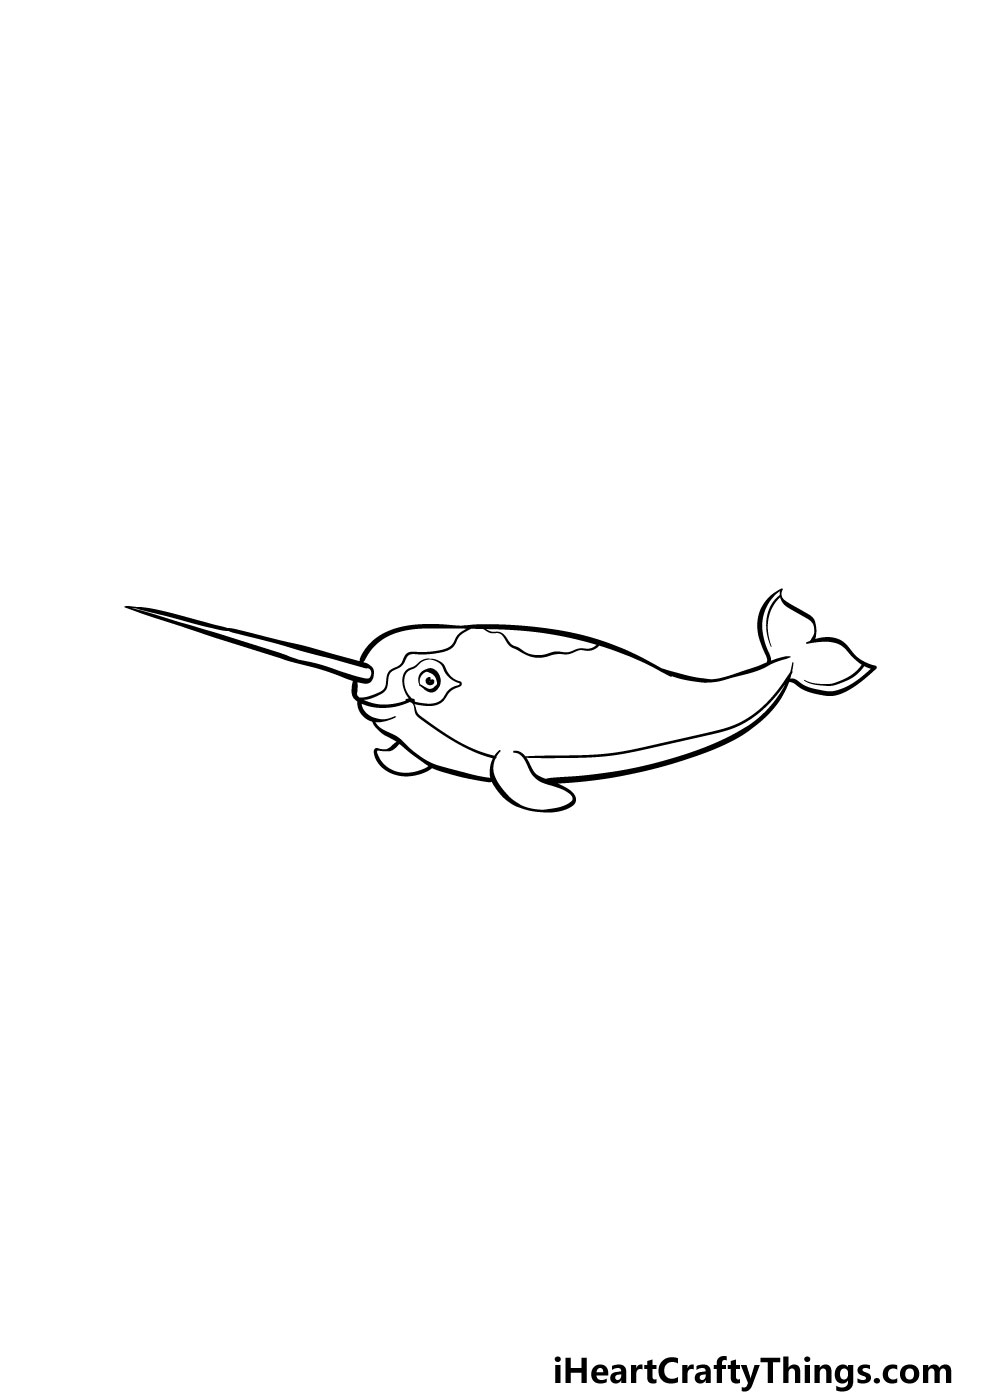 drawing a narwhal step 6